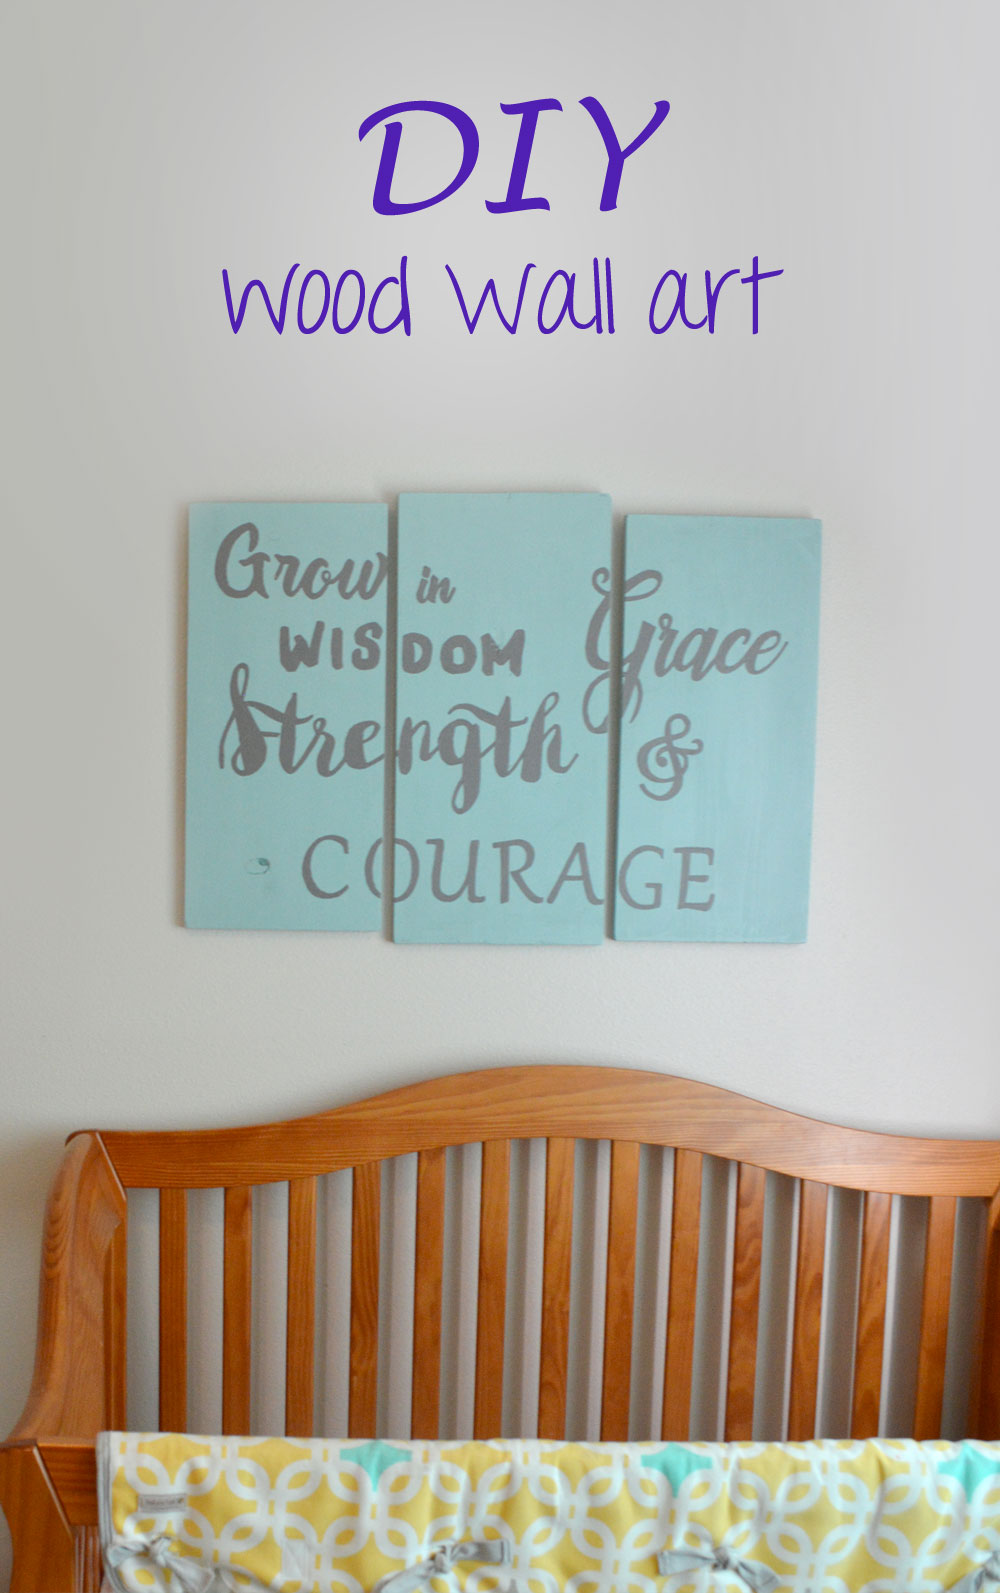 DIY wood wall art with custom lettering stencils for kid's room - Mommy Scene